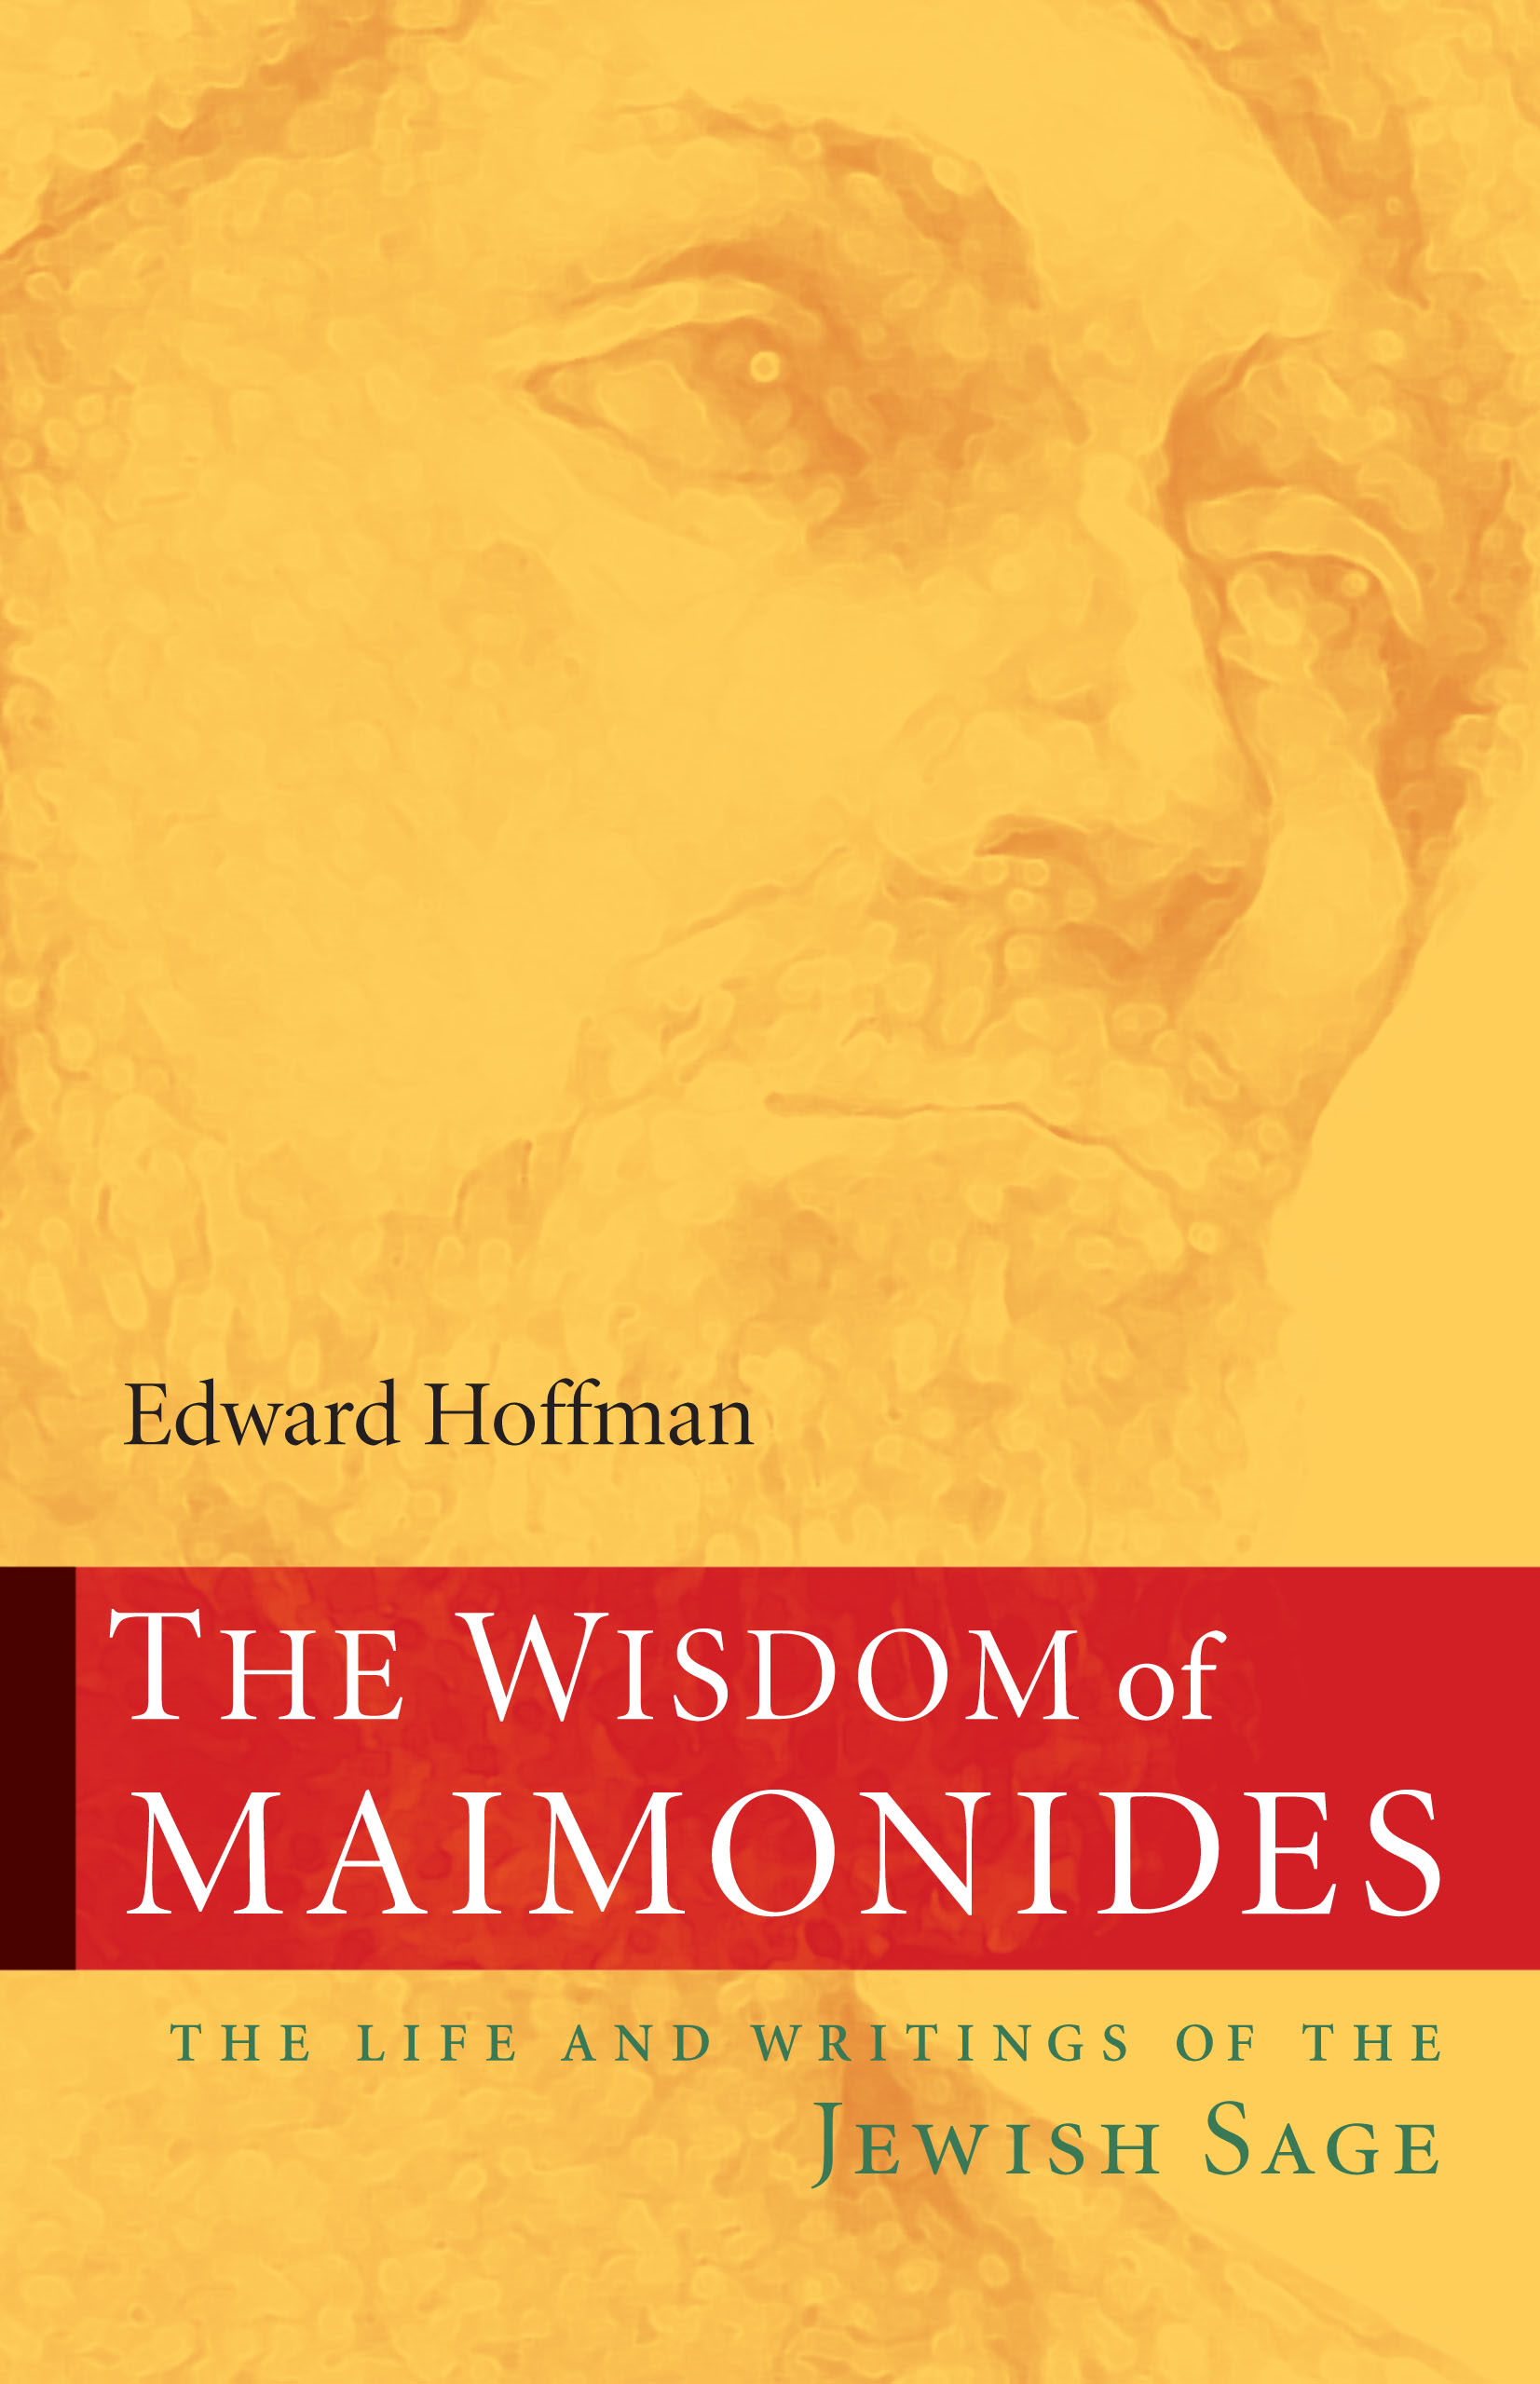 The Wisdom of Maimonides: The Life and Writings of the Jewish Sage